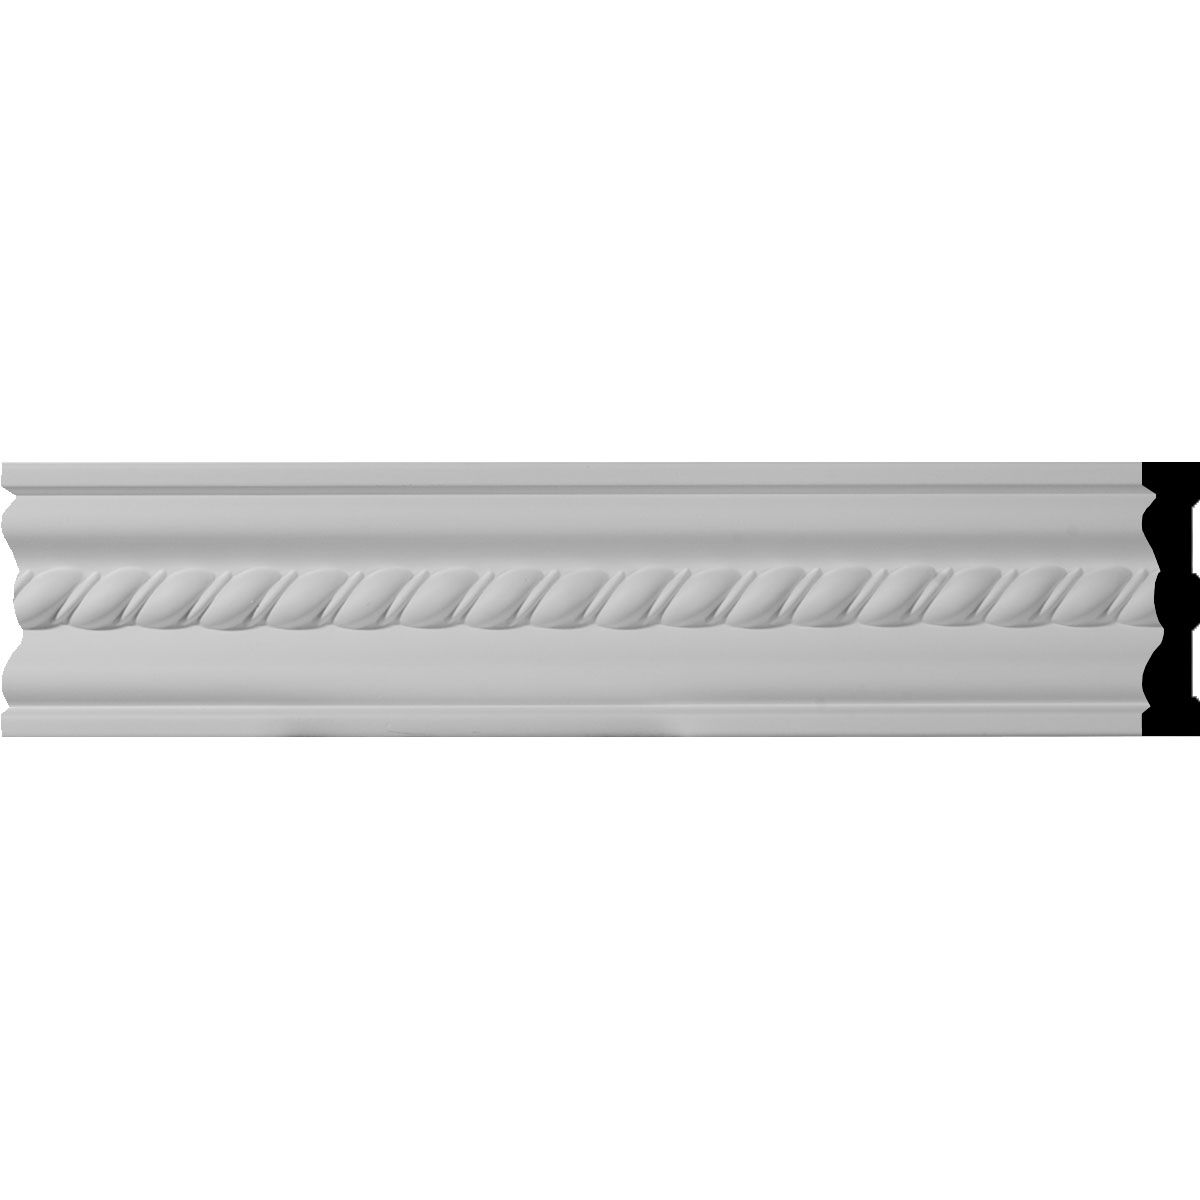 4 Inch H X 3 4 Inch P X 94 1 2 Inch L Oslo Rope Chair Rail Or Casing Moulding Panel Moulding Chair Rail Molding Wall Treatments